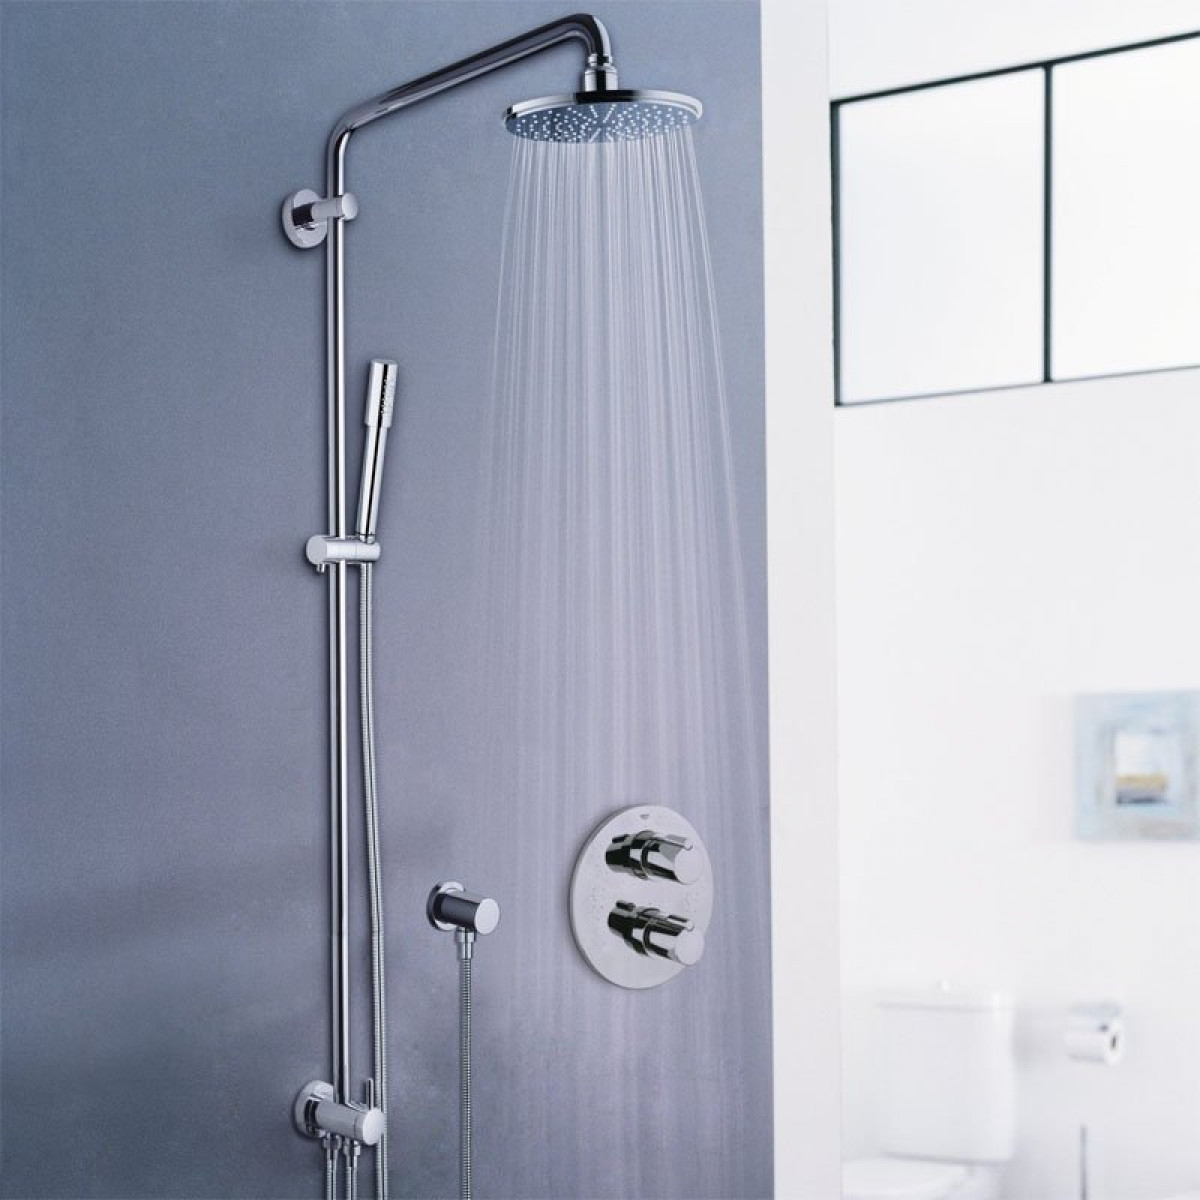 Extrem Grohe Rainshower 210 Shower System With Diverter For Wall Mounting MY84